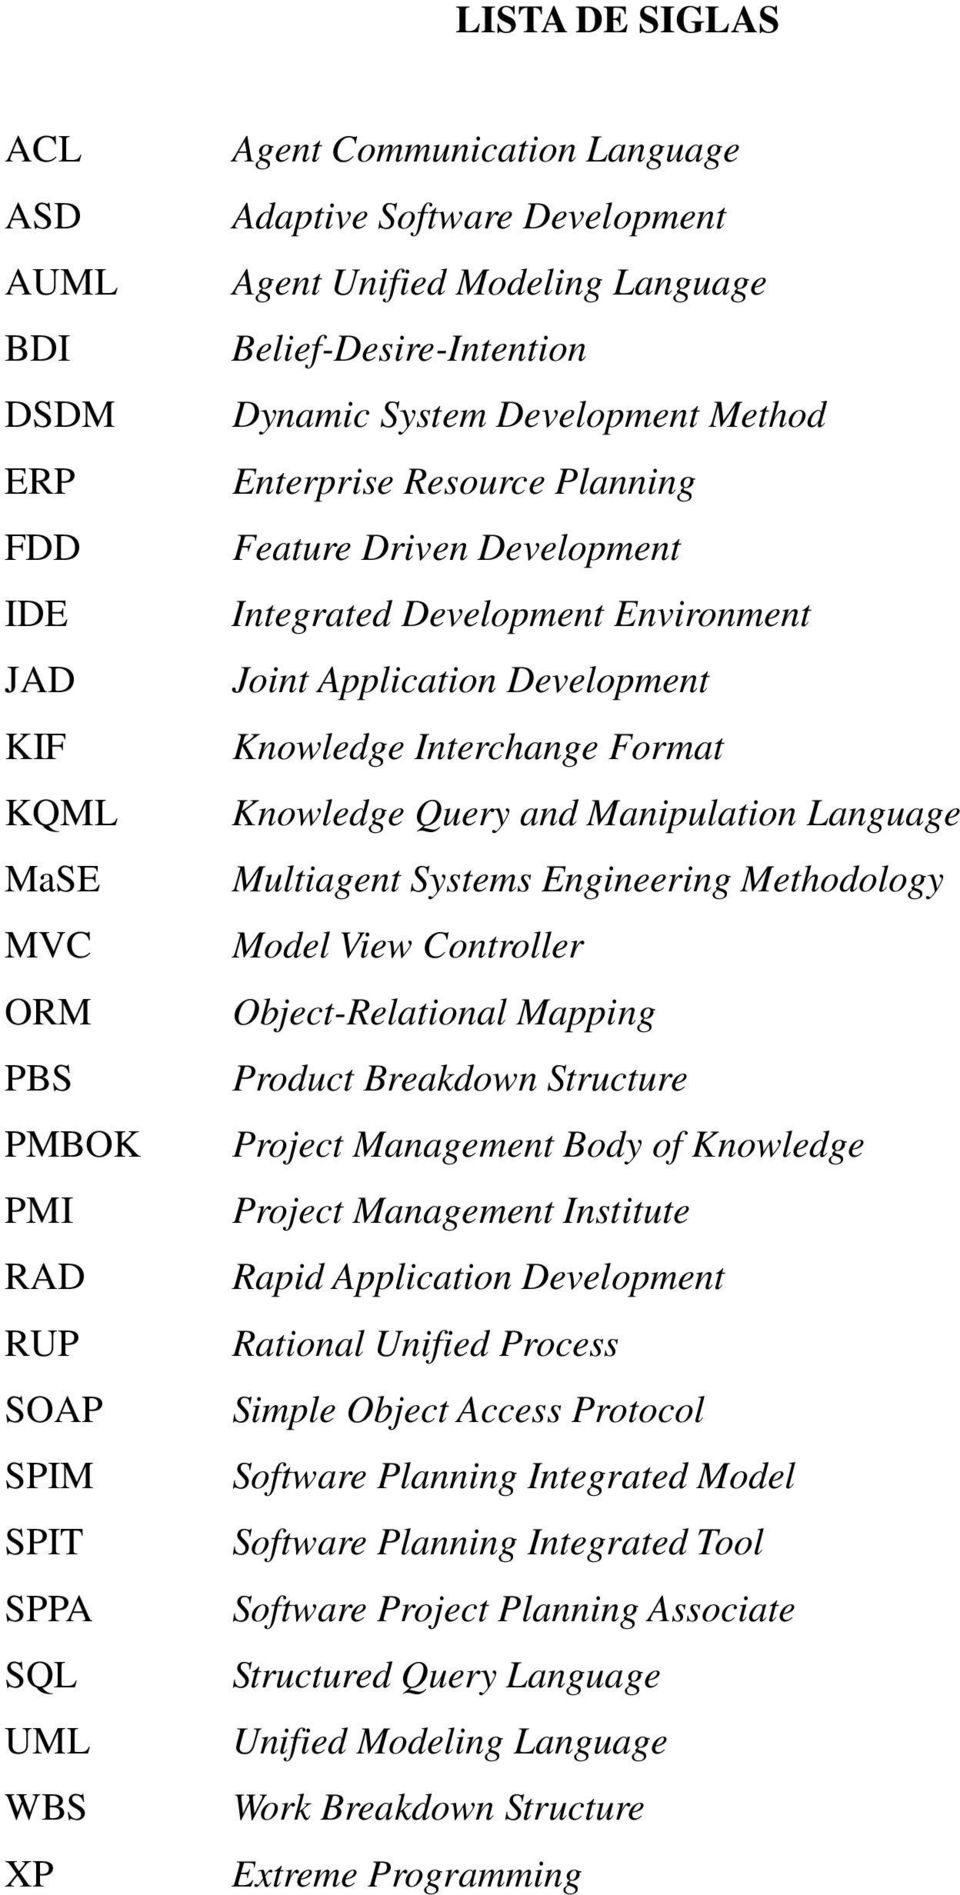 Development Knowledge Interchange Format Knowledge Query and Manipulation Language Multiagent Systems Engineering Methodology Model View Controller Object-Relational Mapping Product Breakdown